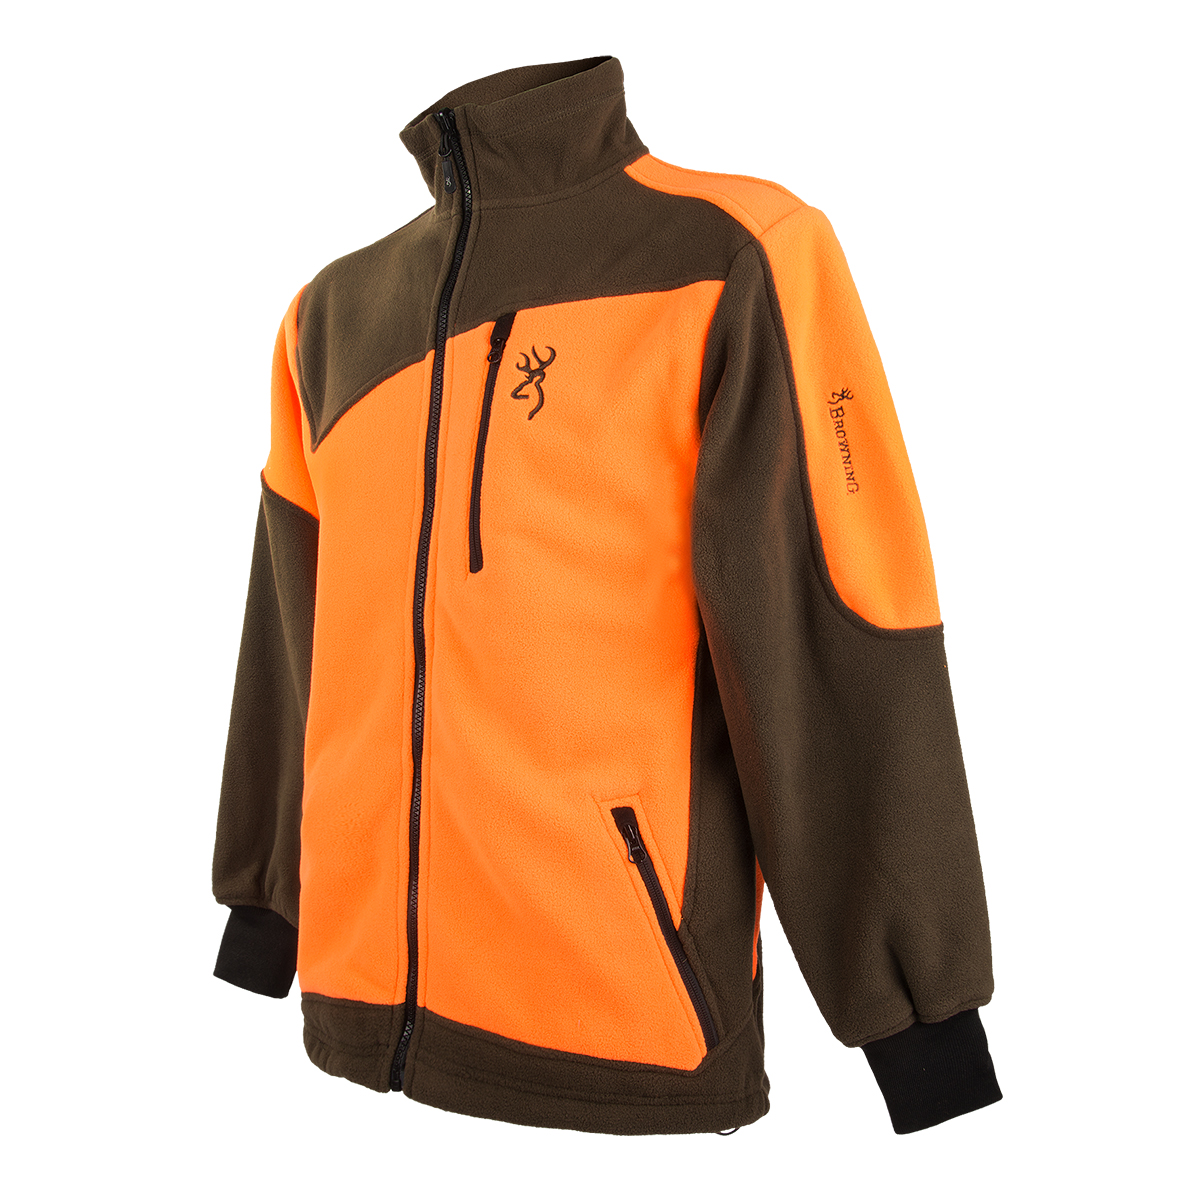 Browning Powerfleece Jacke grün/orange im Pareyshop